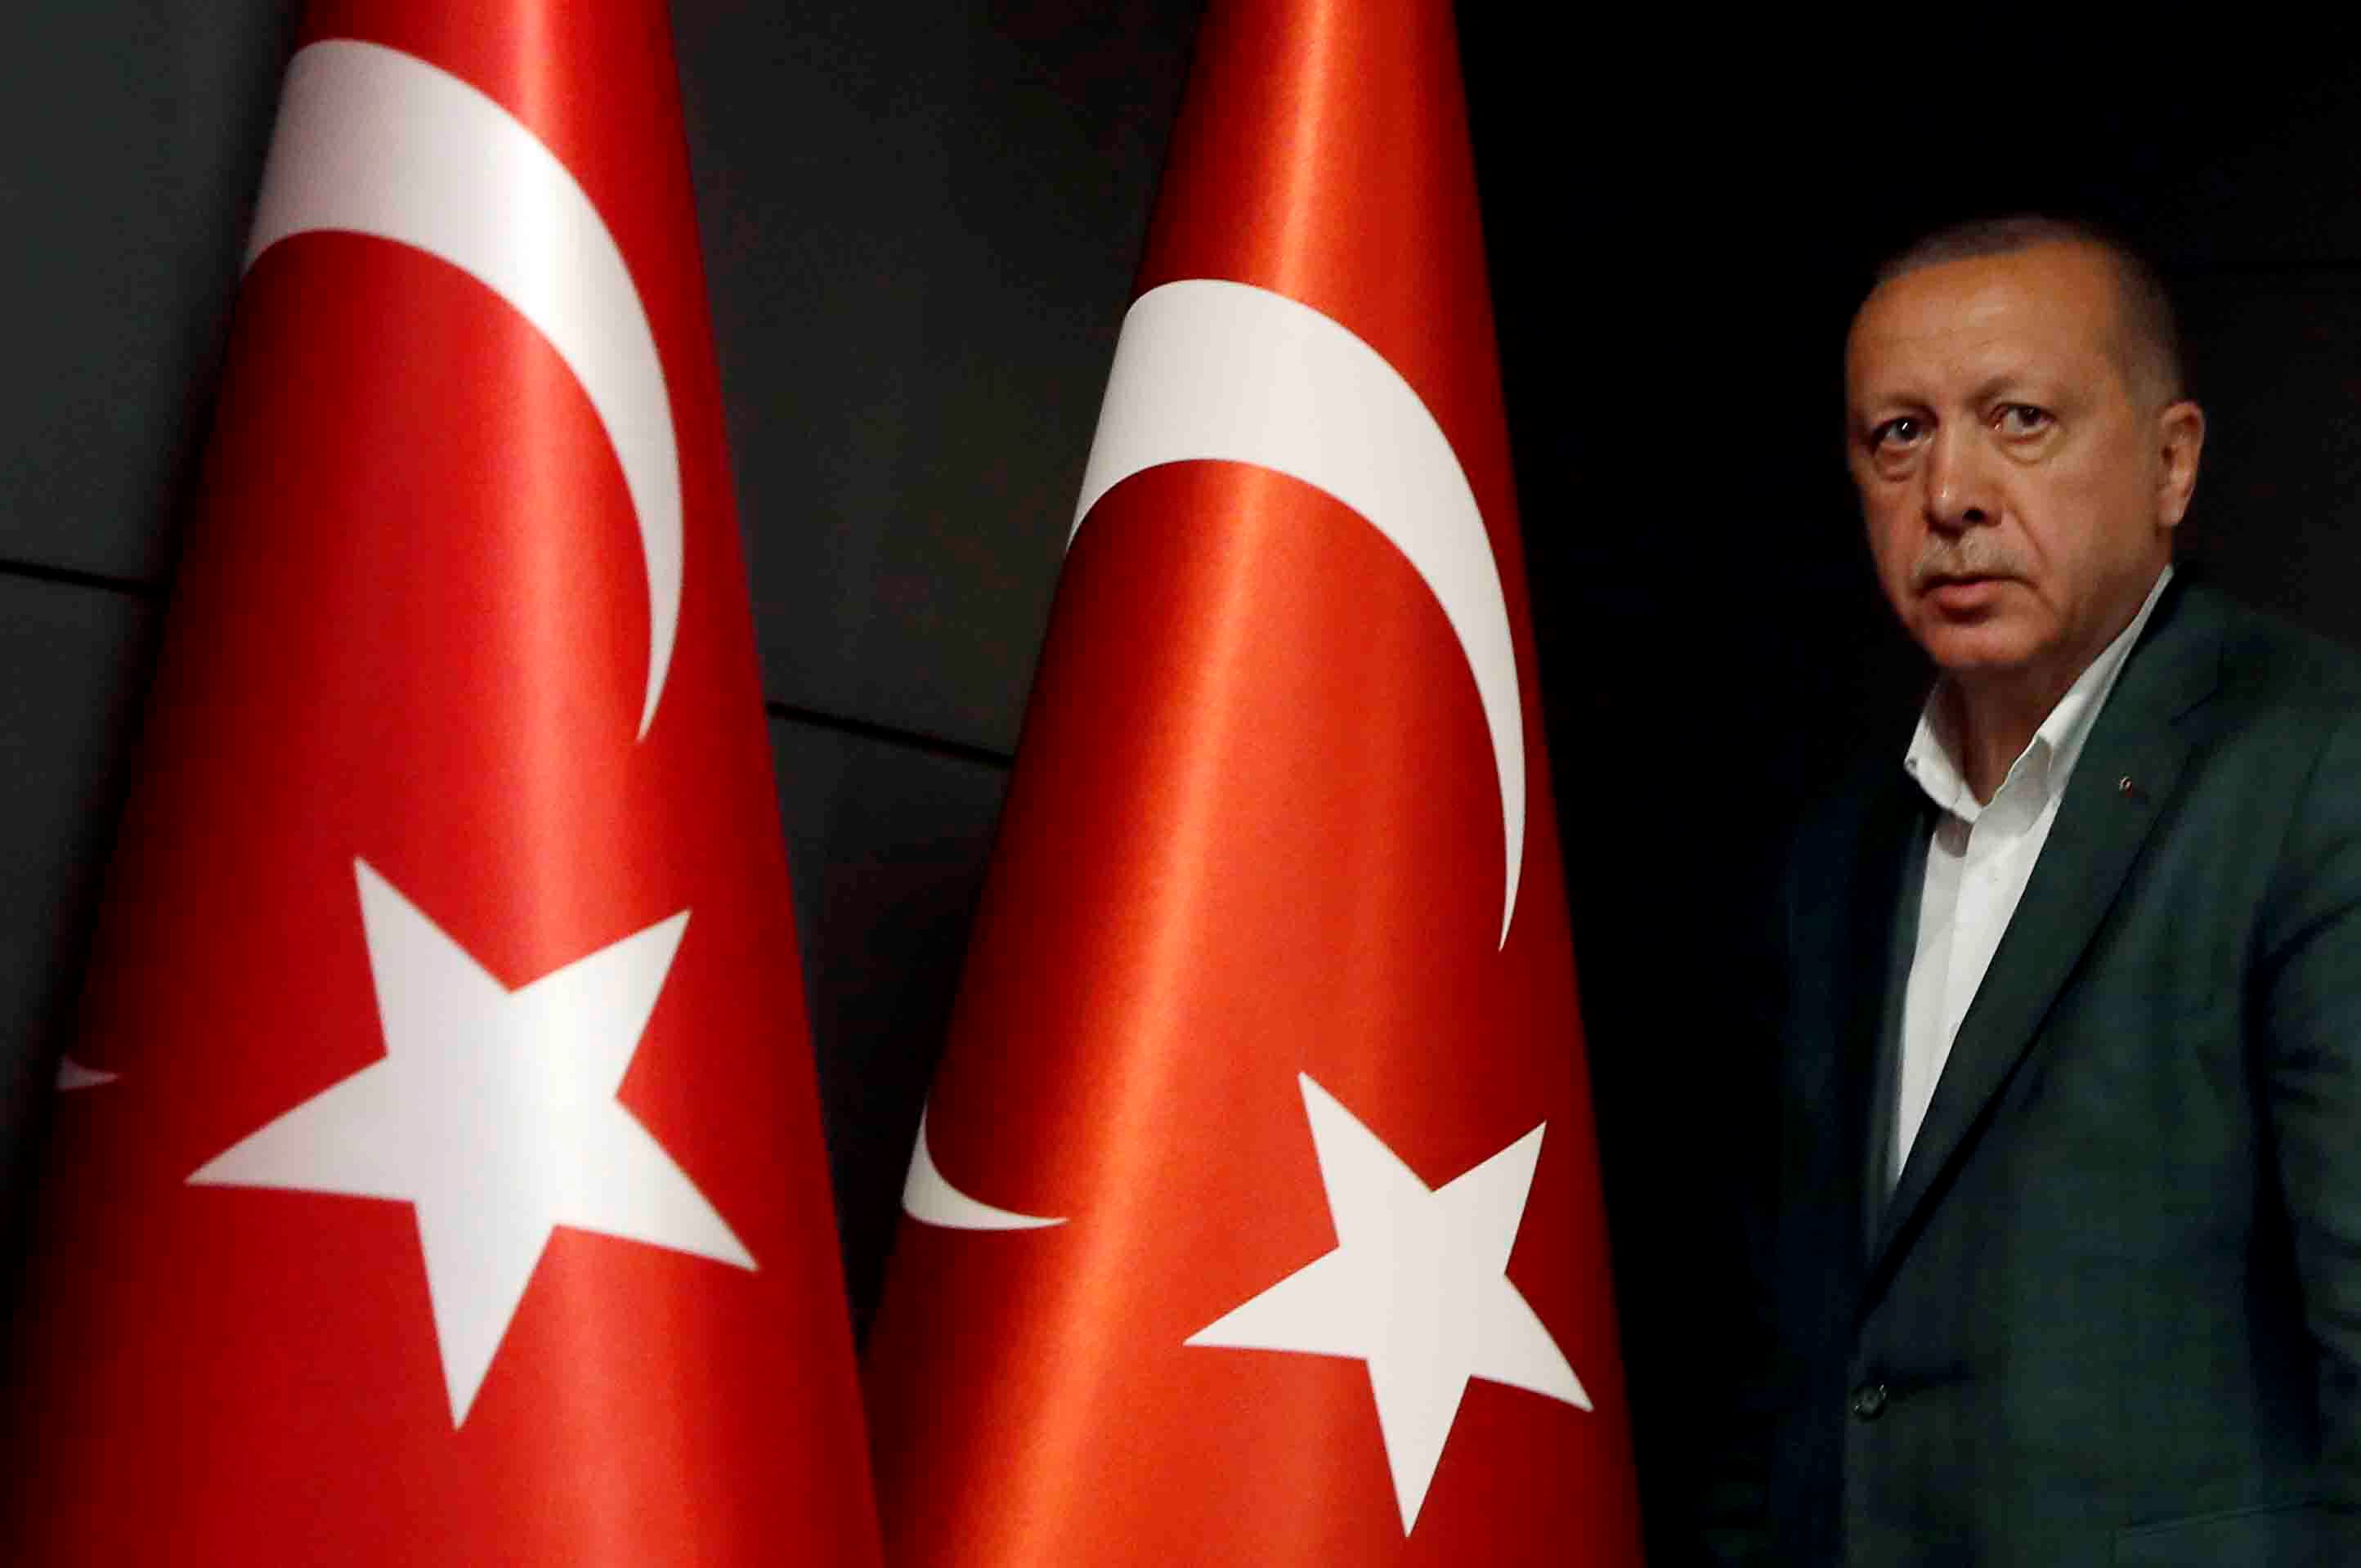 Turkey's Erdogan threatens to release millions of refugees into Europe over criticism of Syria offensive